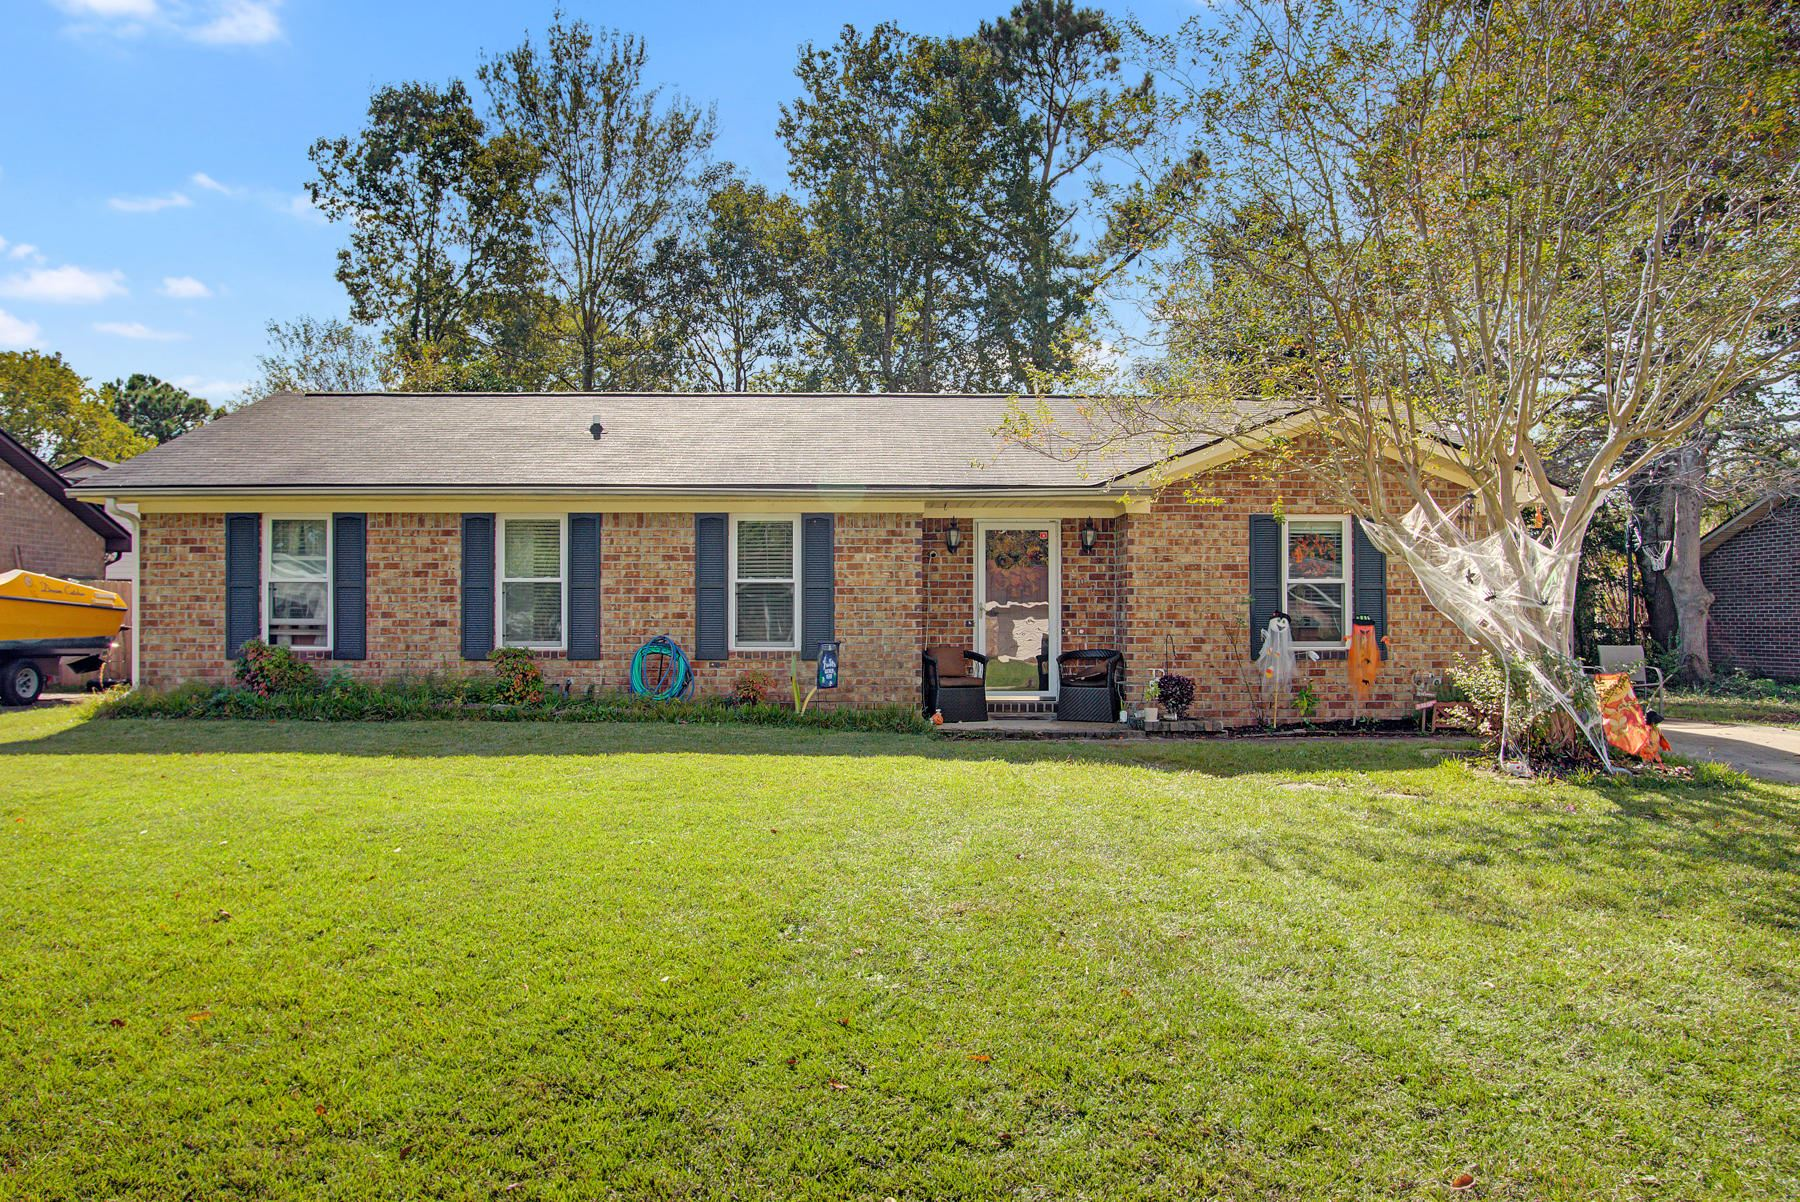 Photo of 507 Bayshore Boulevard, Goose Creek, SC 29445 (MLS # 20029339)